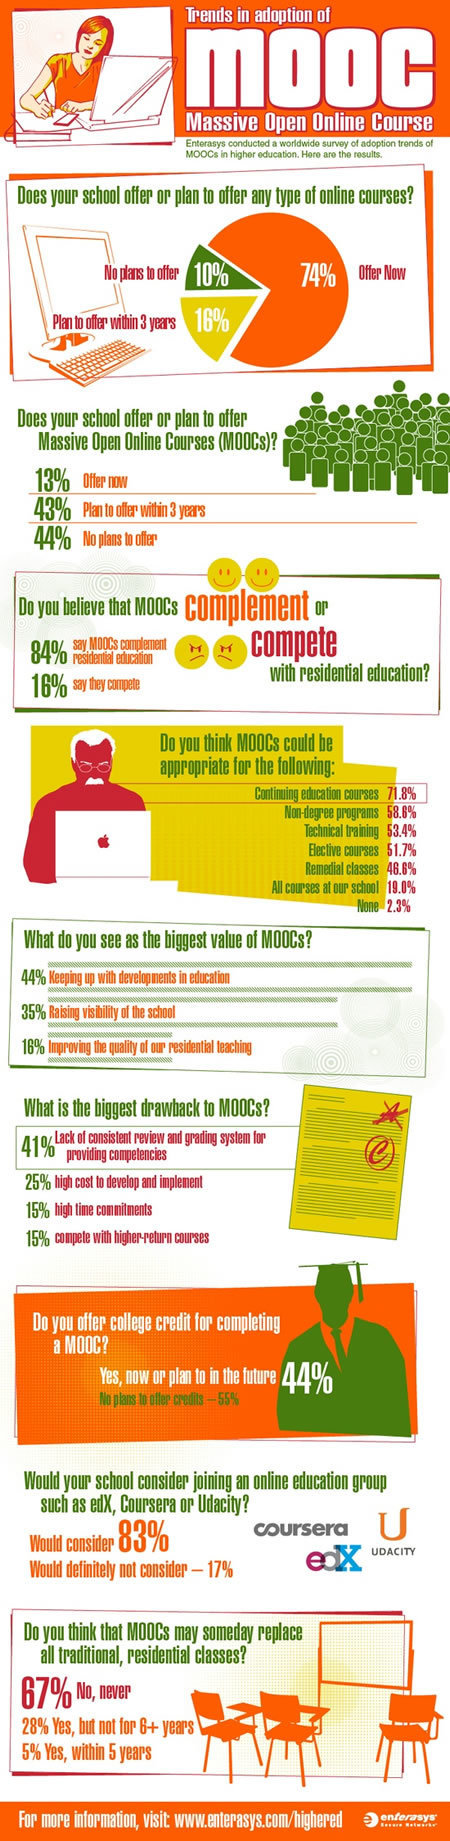 The latest trends in MOOCs | Campus Life | Scoop.it